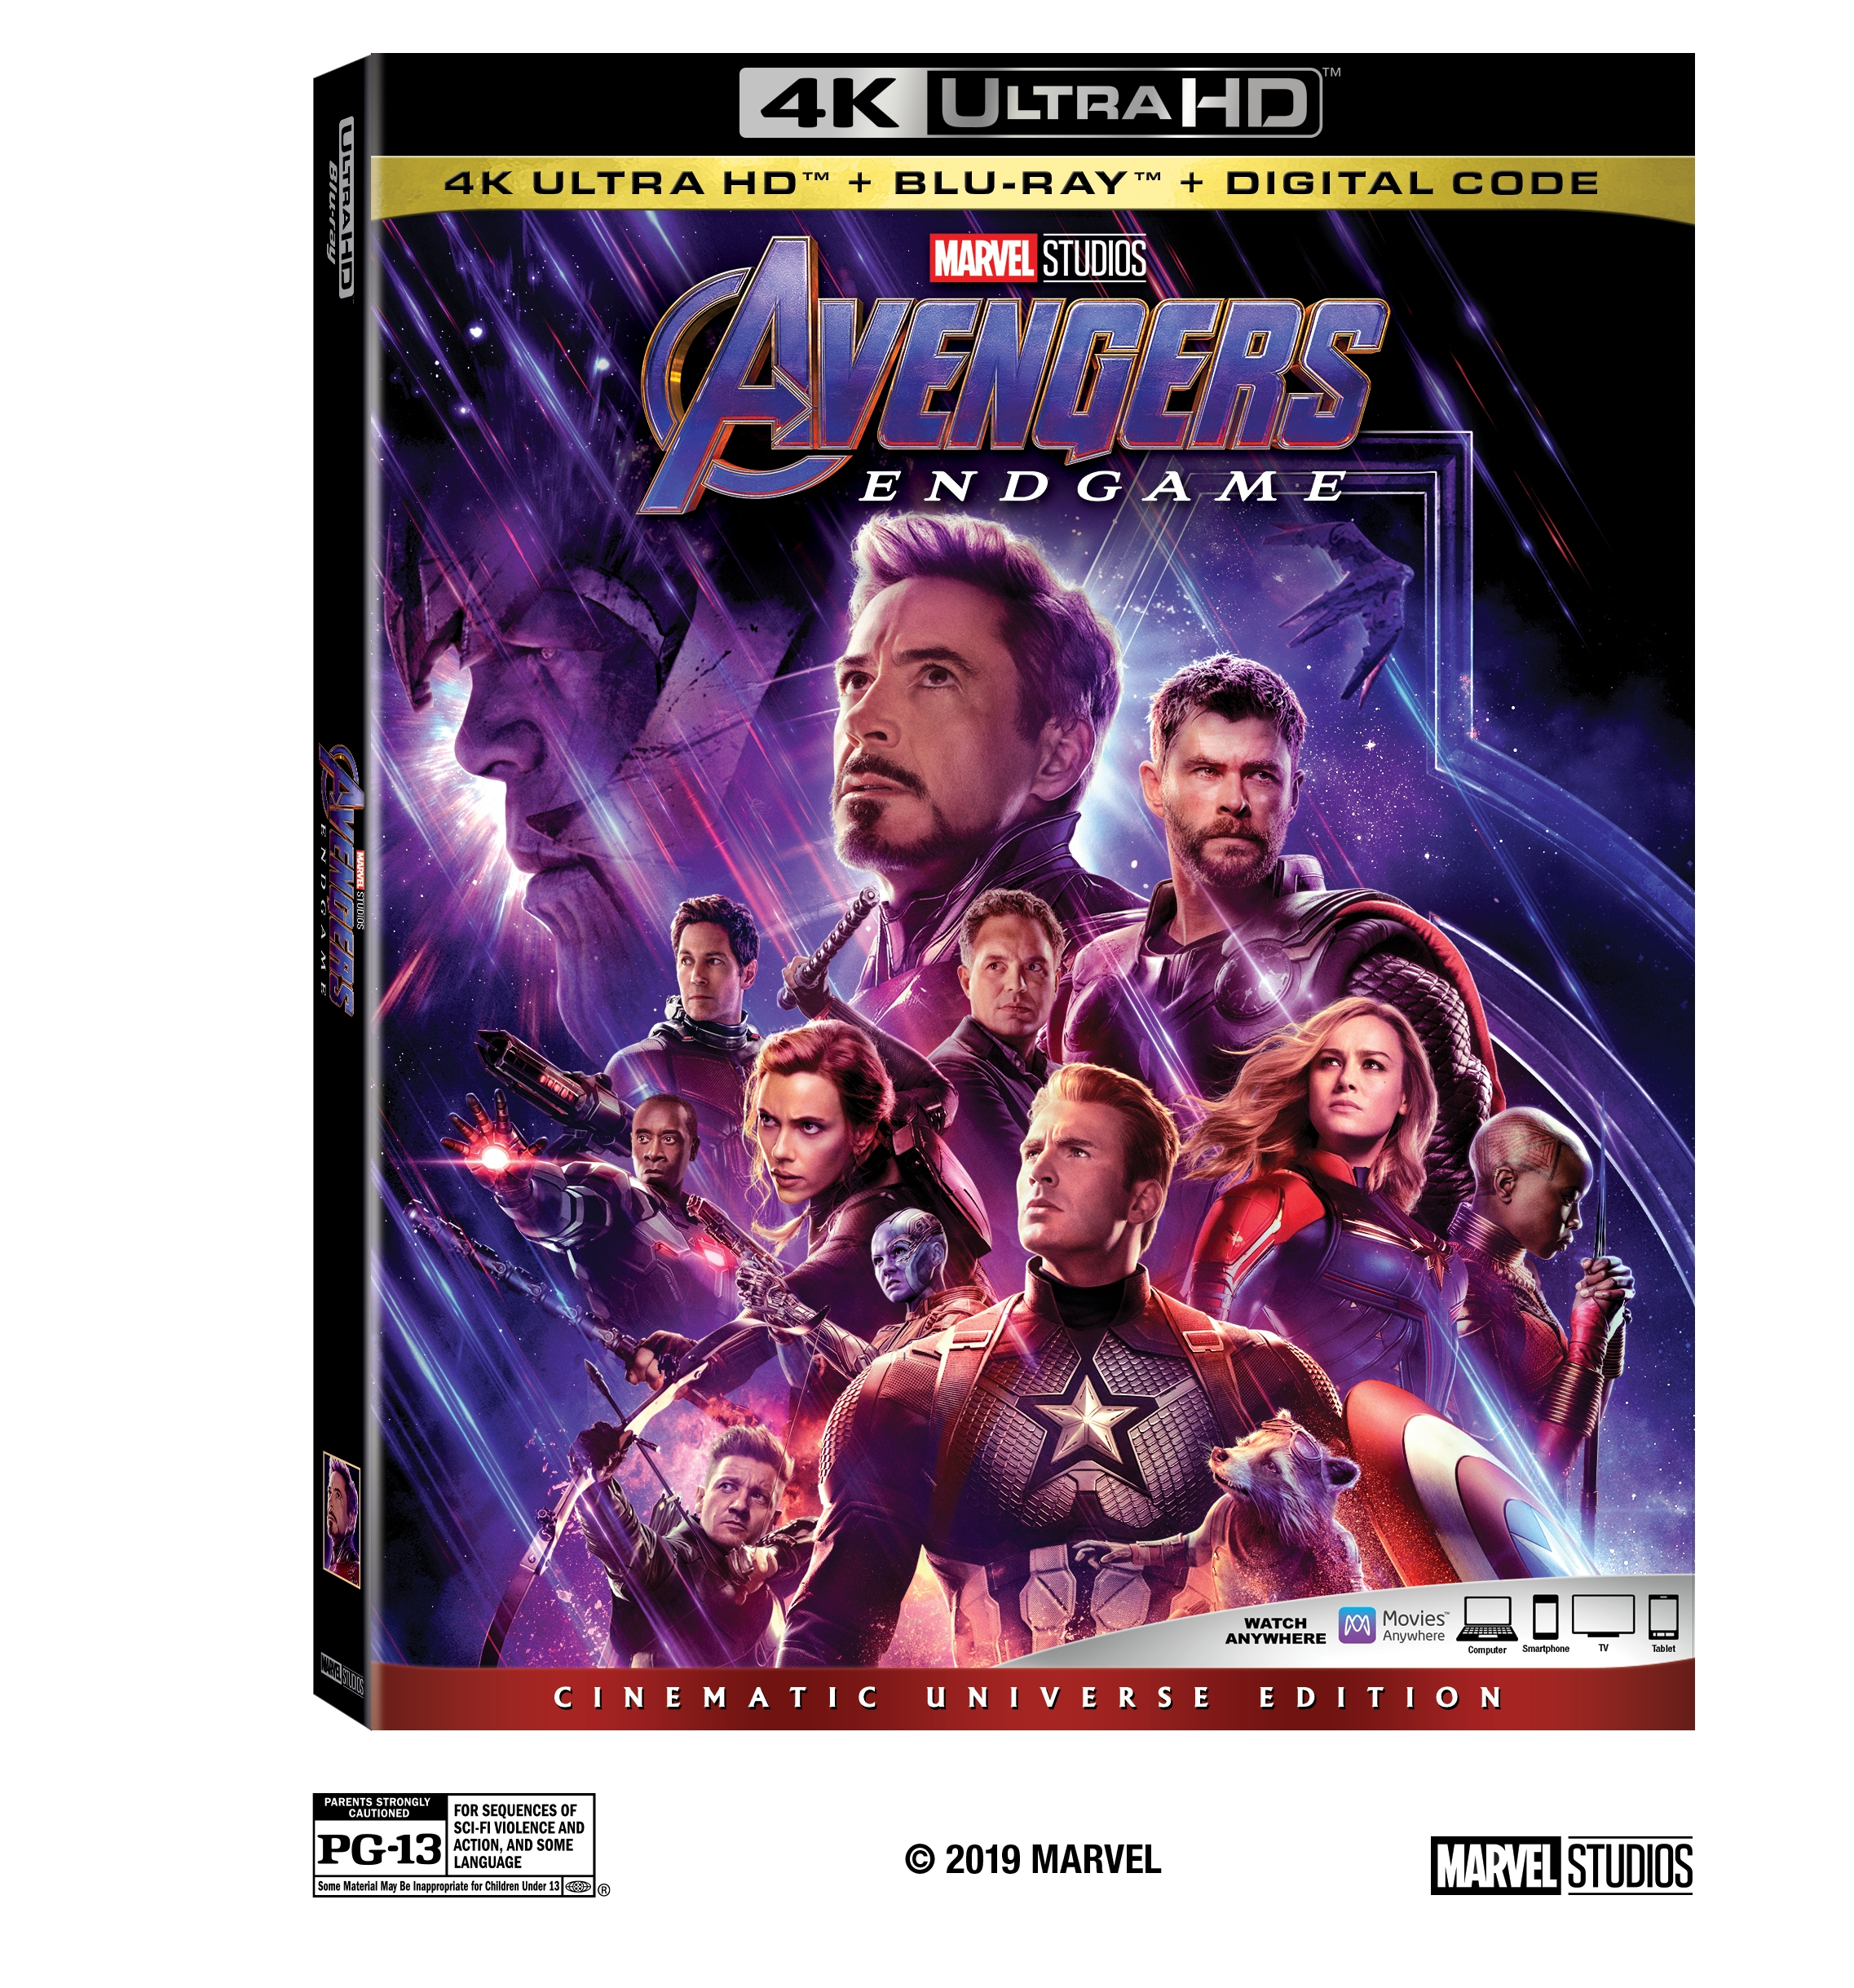 After 11 years, Avengers is finally coming to an end with the release of AVENGERS: ENDGAME on Digital on July 30th and BLU-RAY™ on AUG. 13!